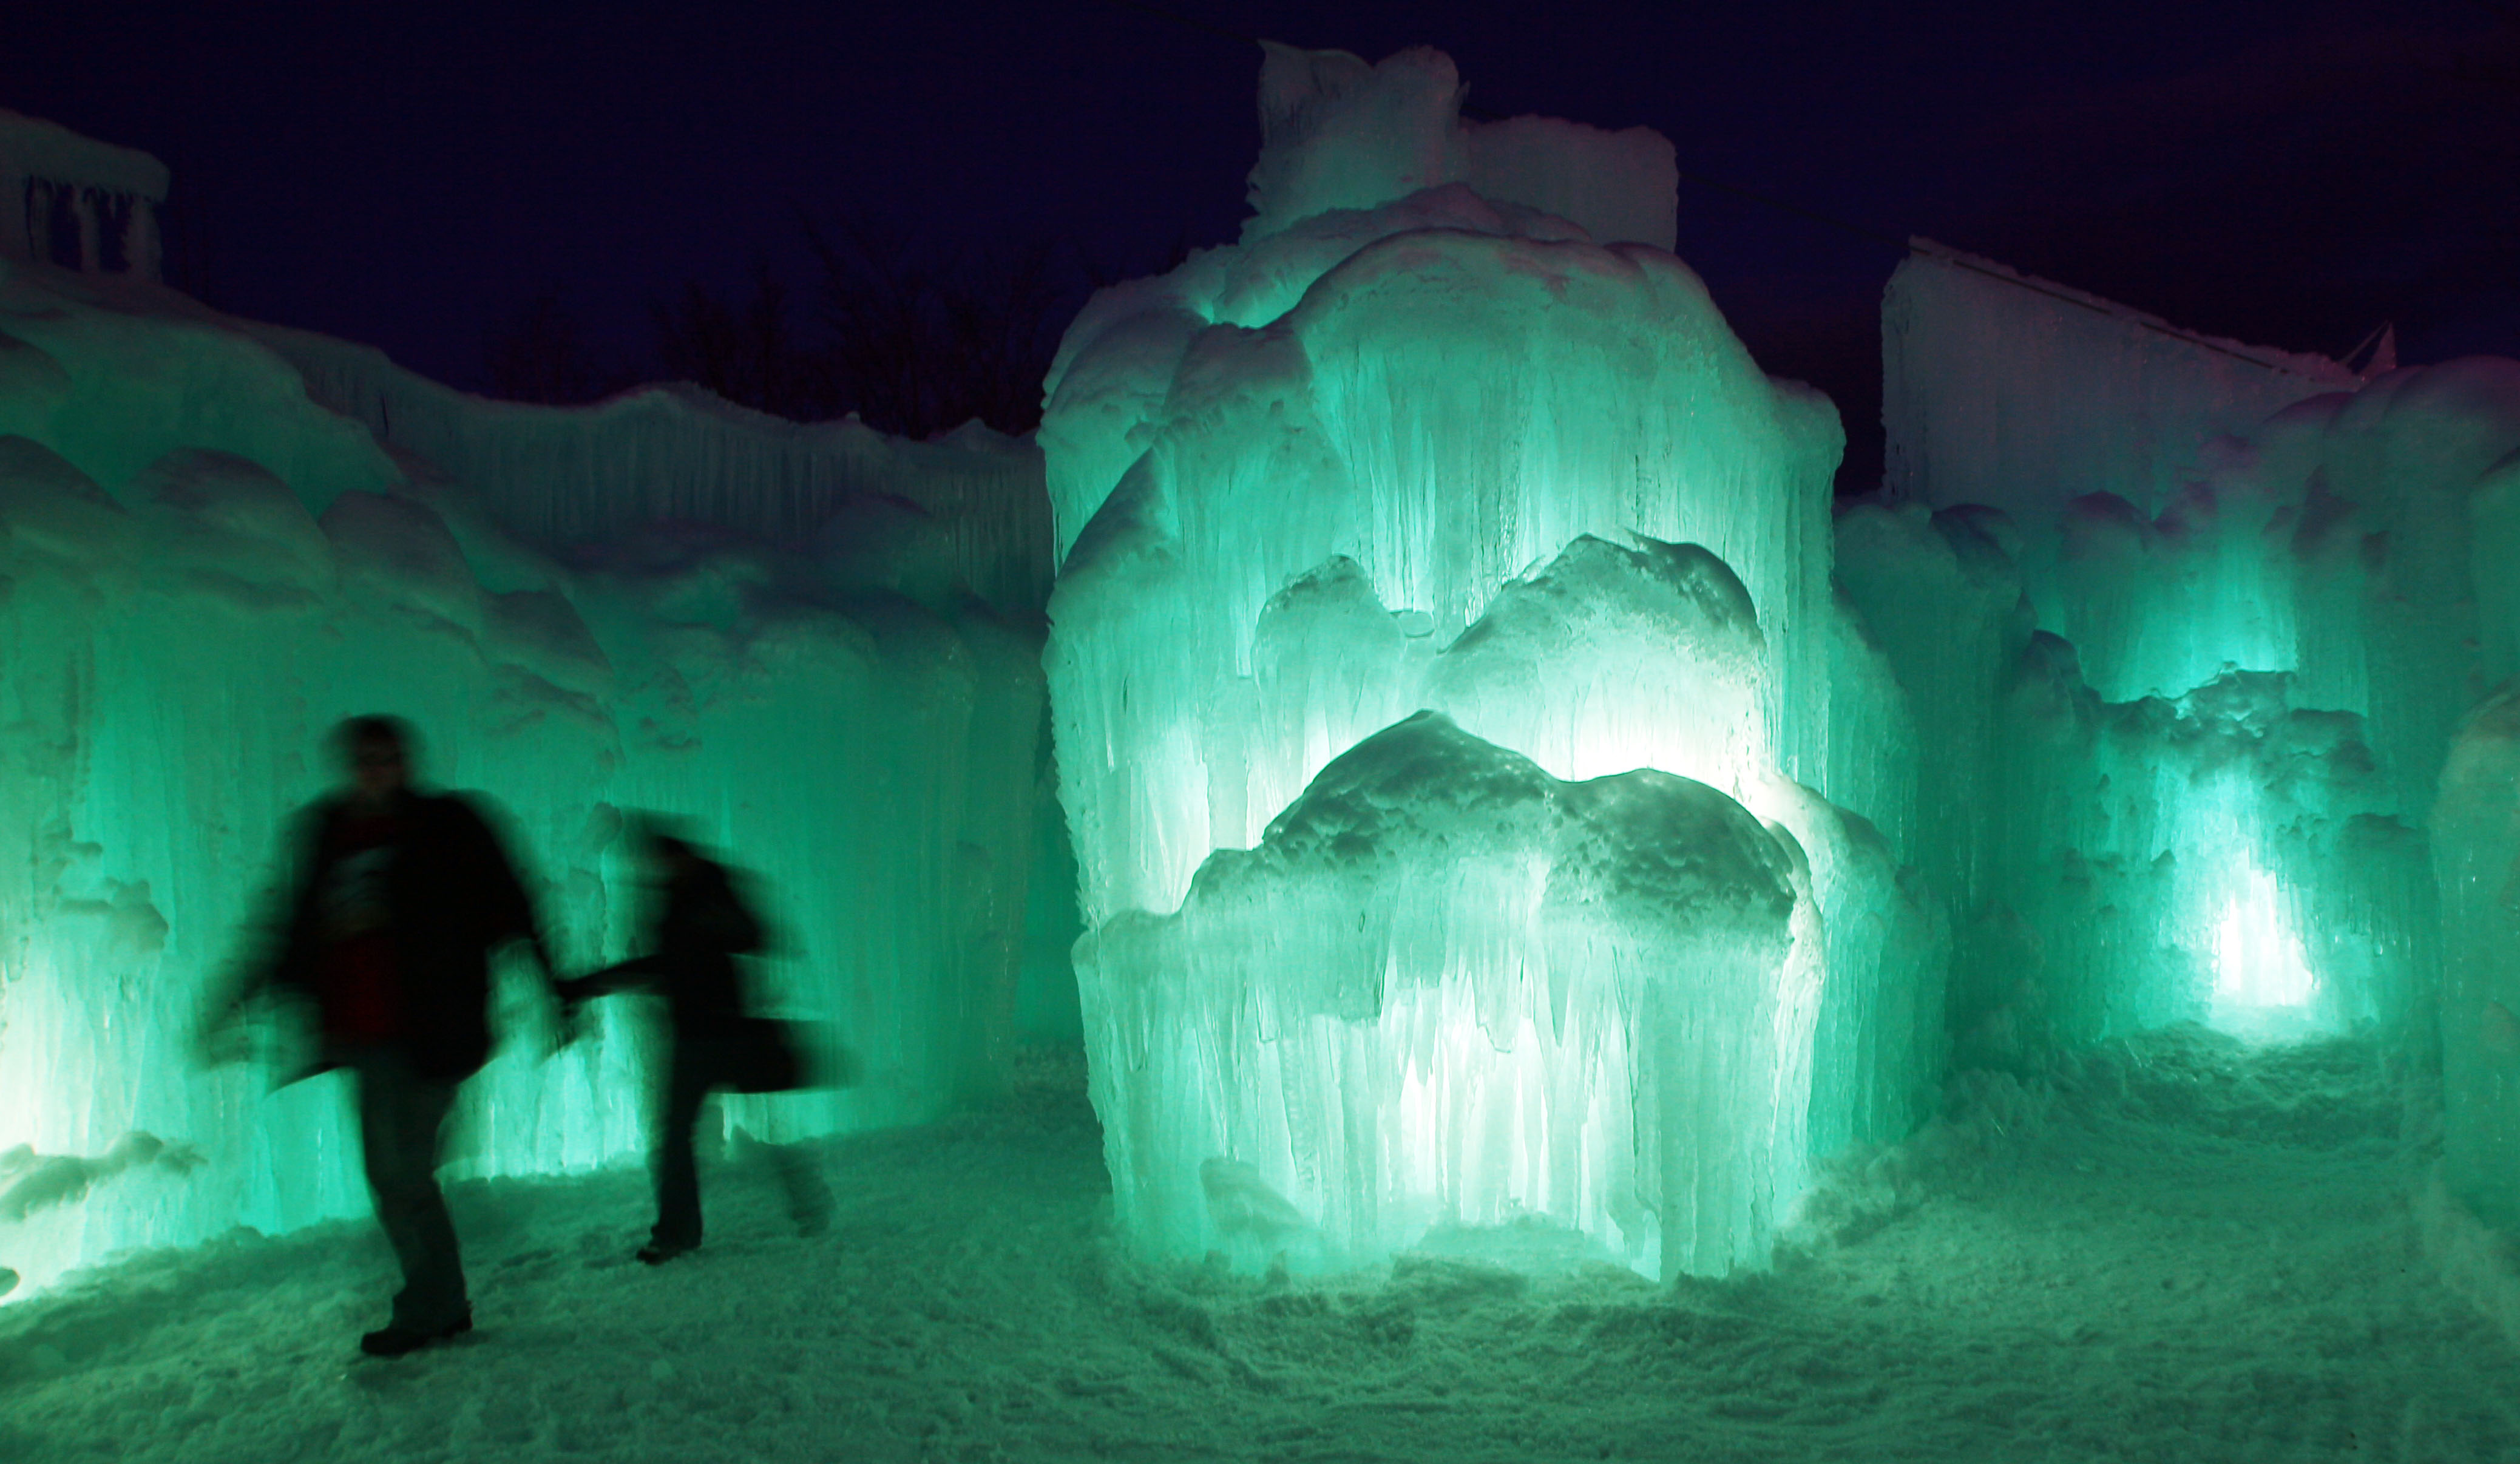 Lincoln Nh Ice Castles Become Tourist Attractions In 3